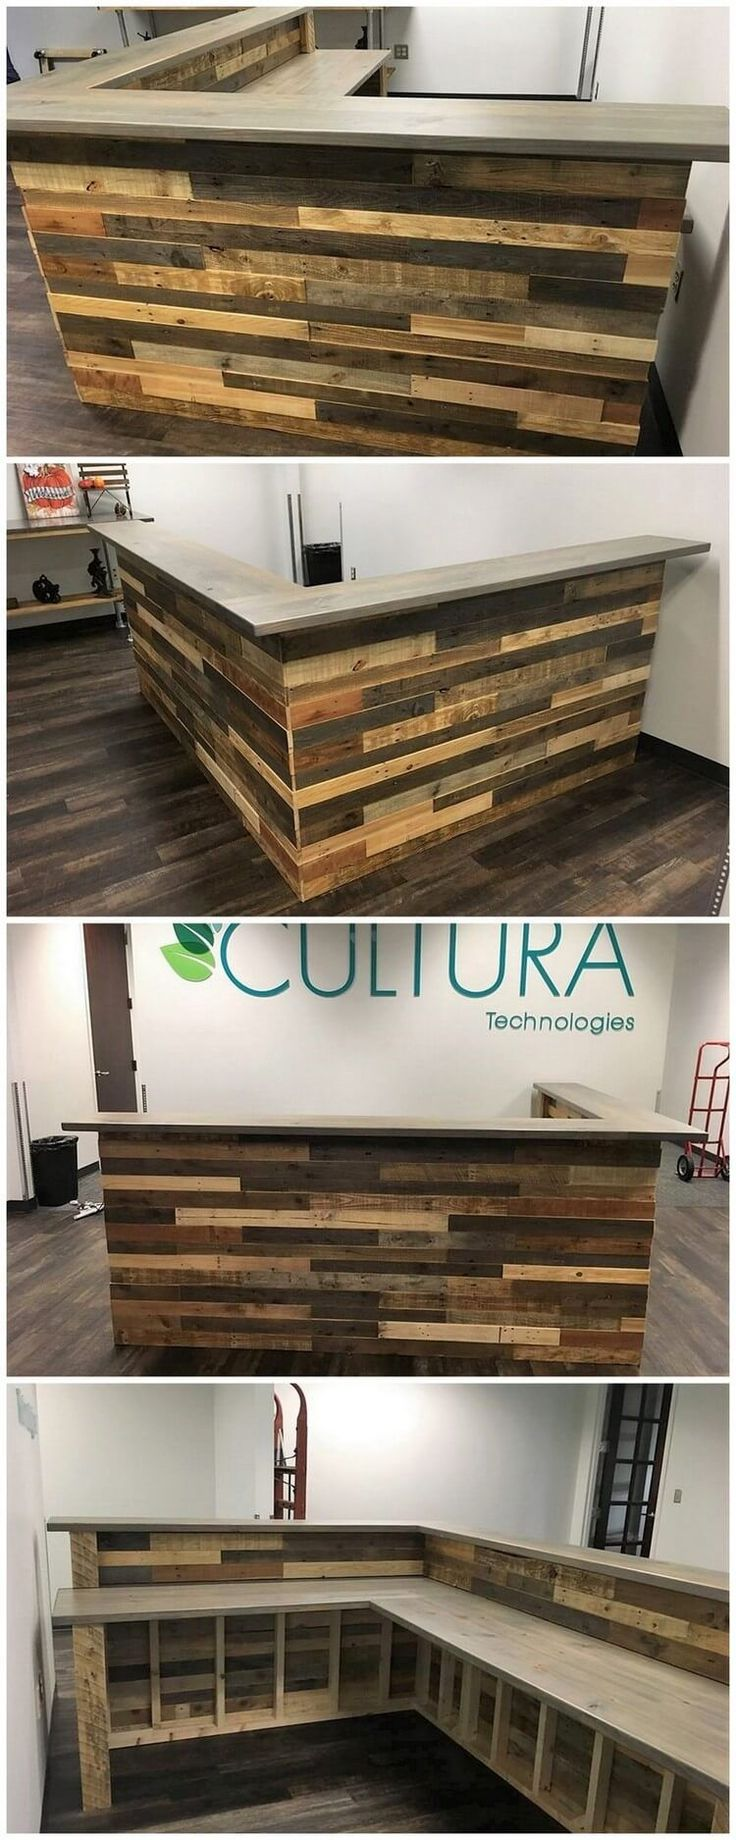 This is the overall image of the wood pallet amazing L shaped counter table or the desk table to make it part of your house right now. Even though if you are starting up a bar counter business, then choosing such alternatives of the bar counter designs would end up the whole bar office mind-blowing looking for sure! #buildwoodtable